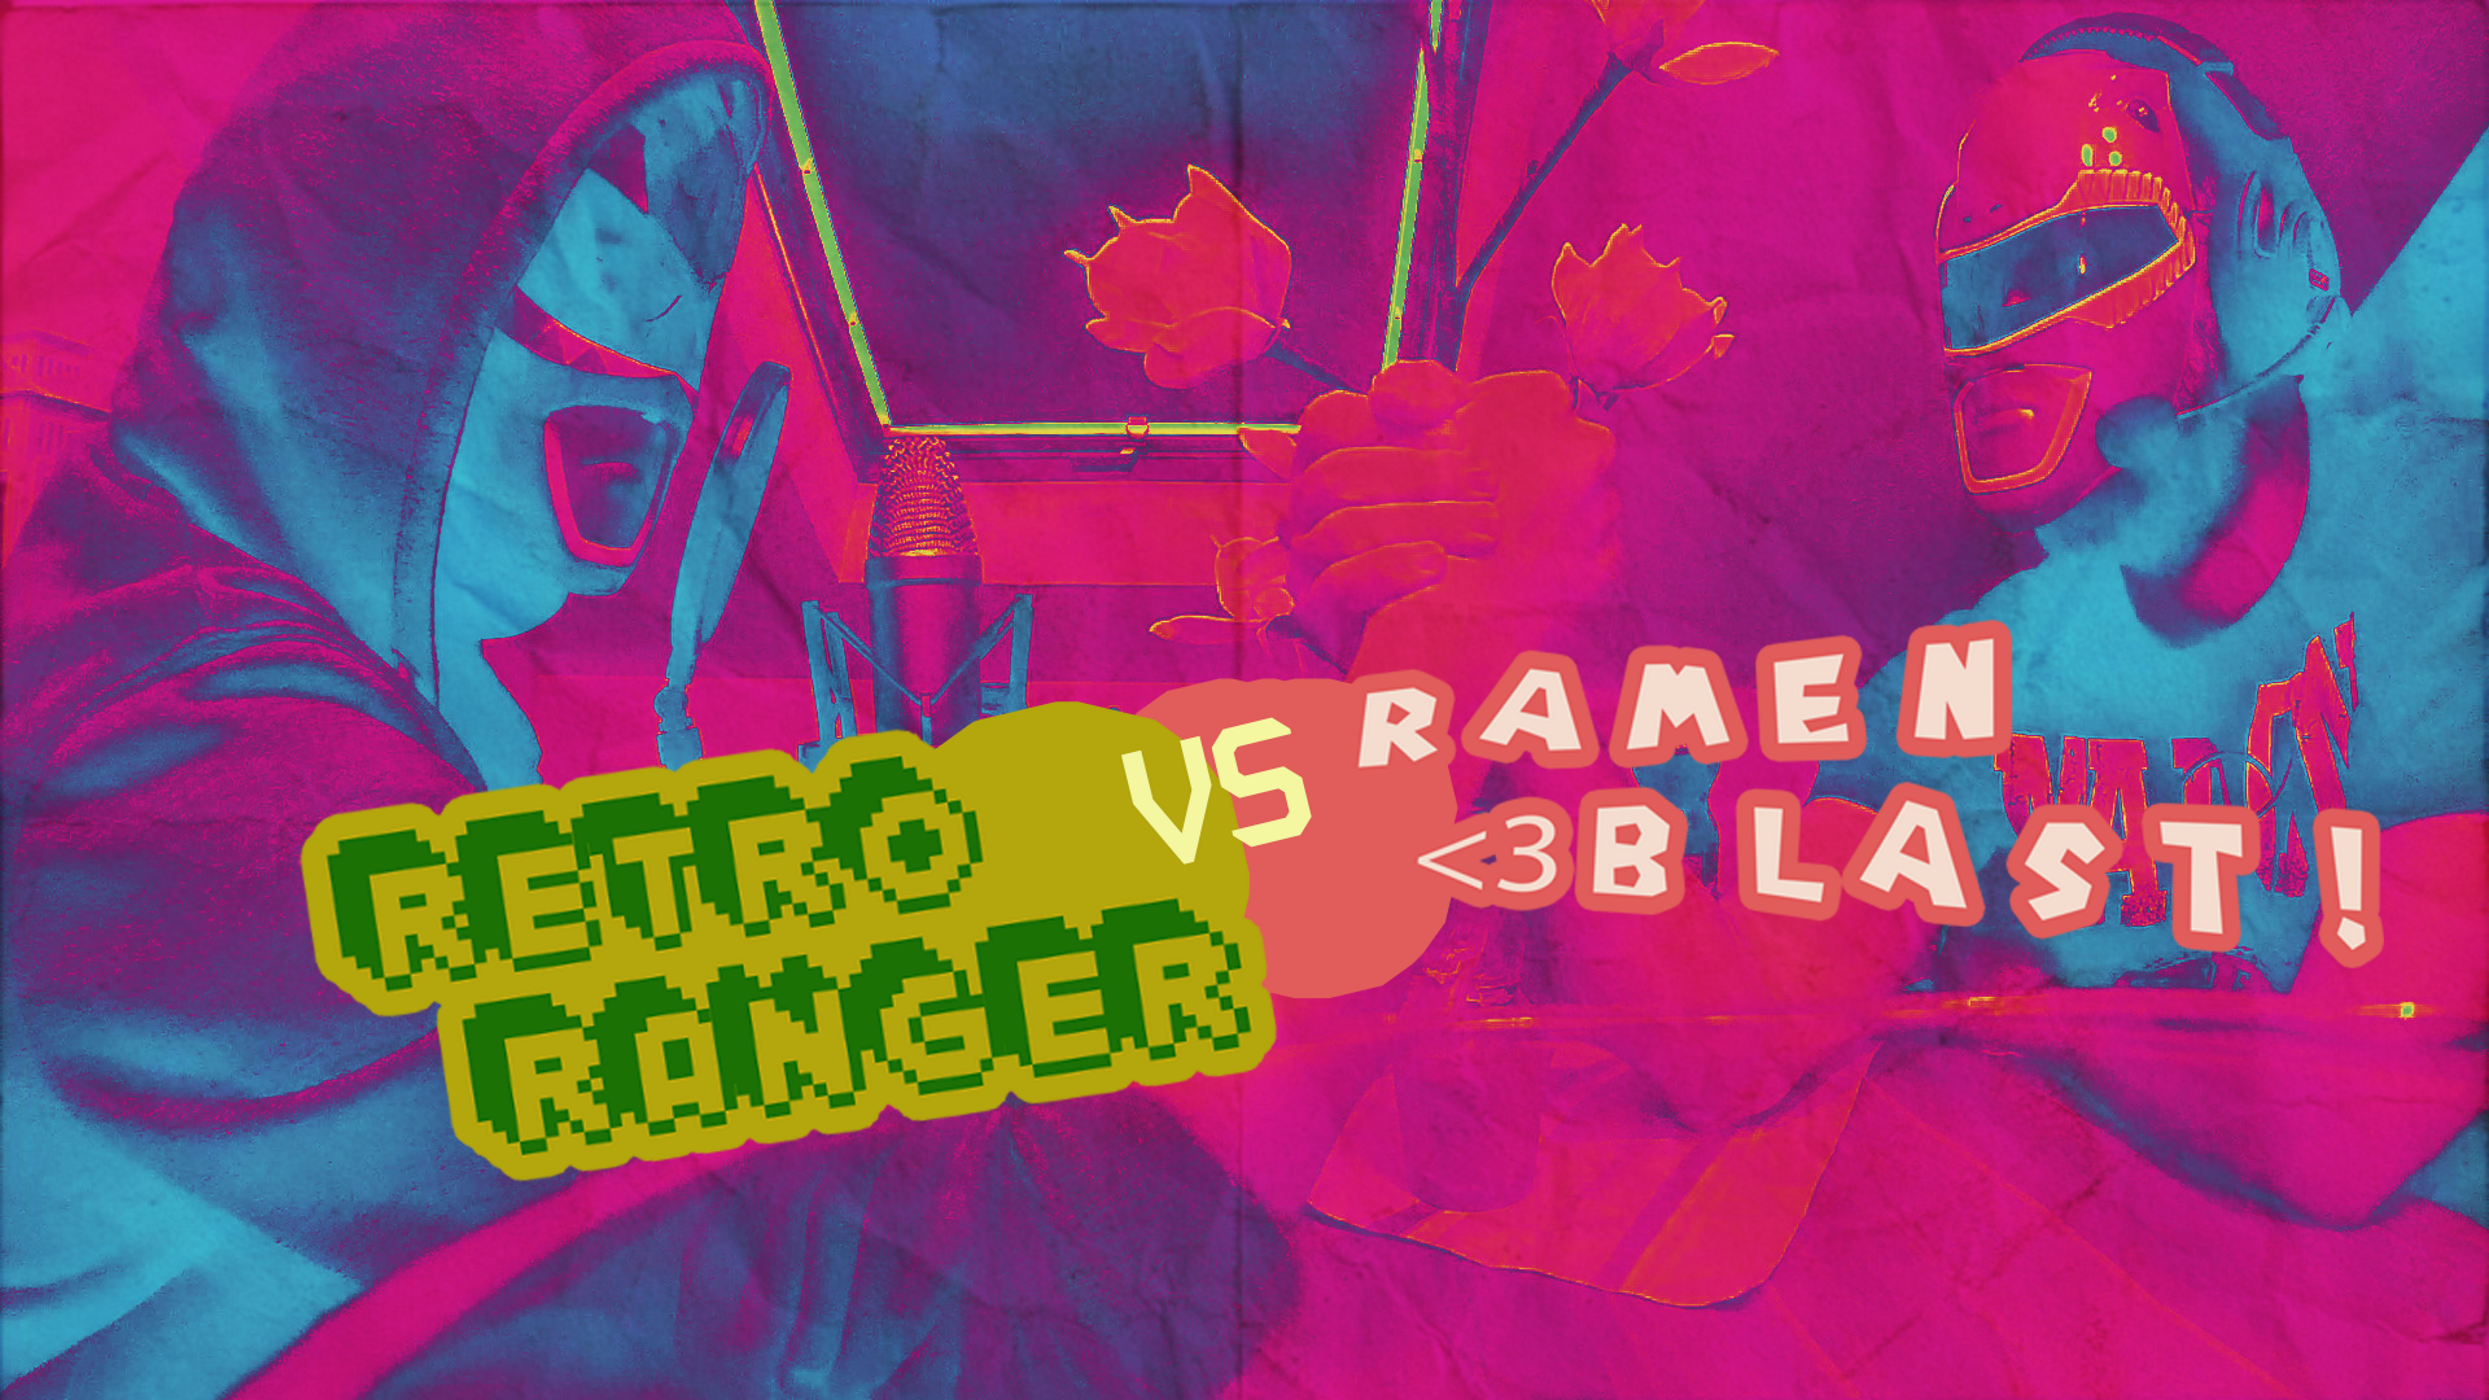 [RetroRanger vs RamenBlast!]